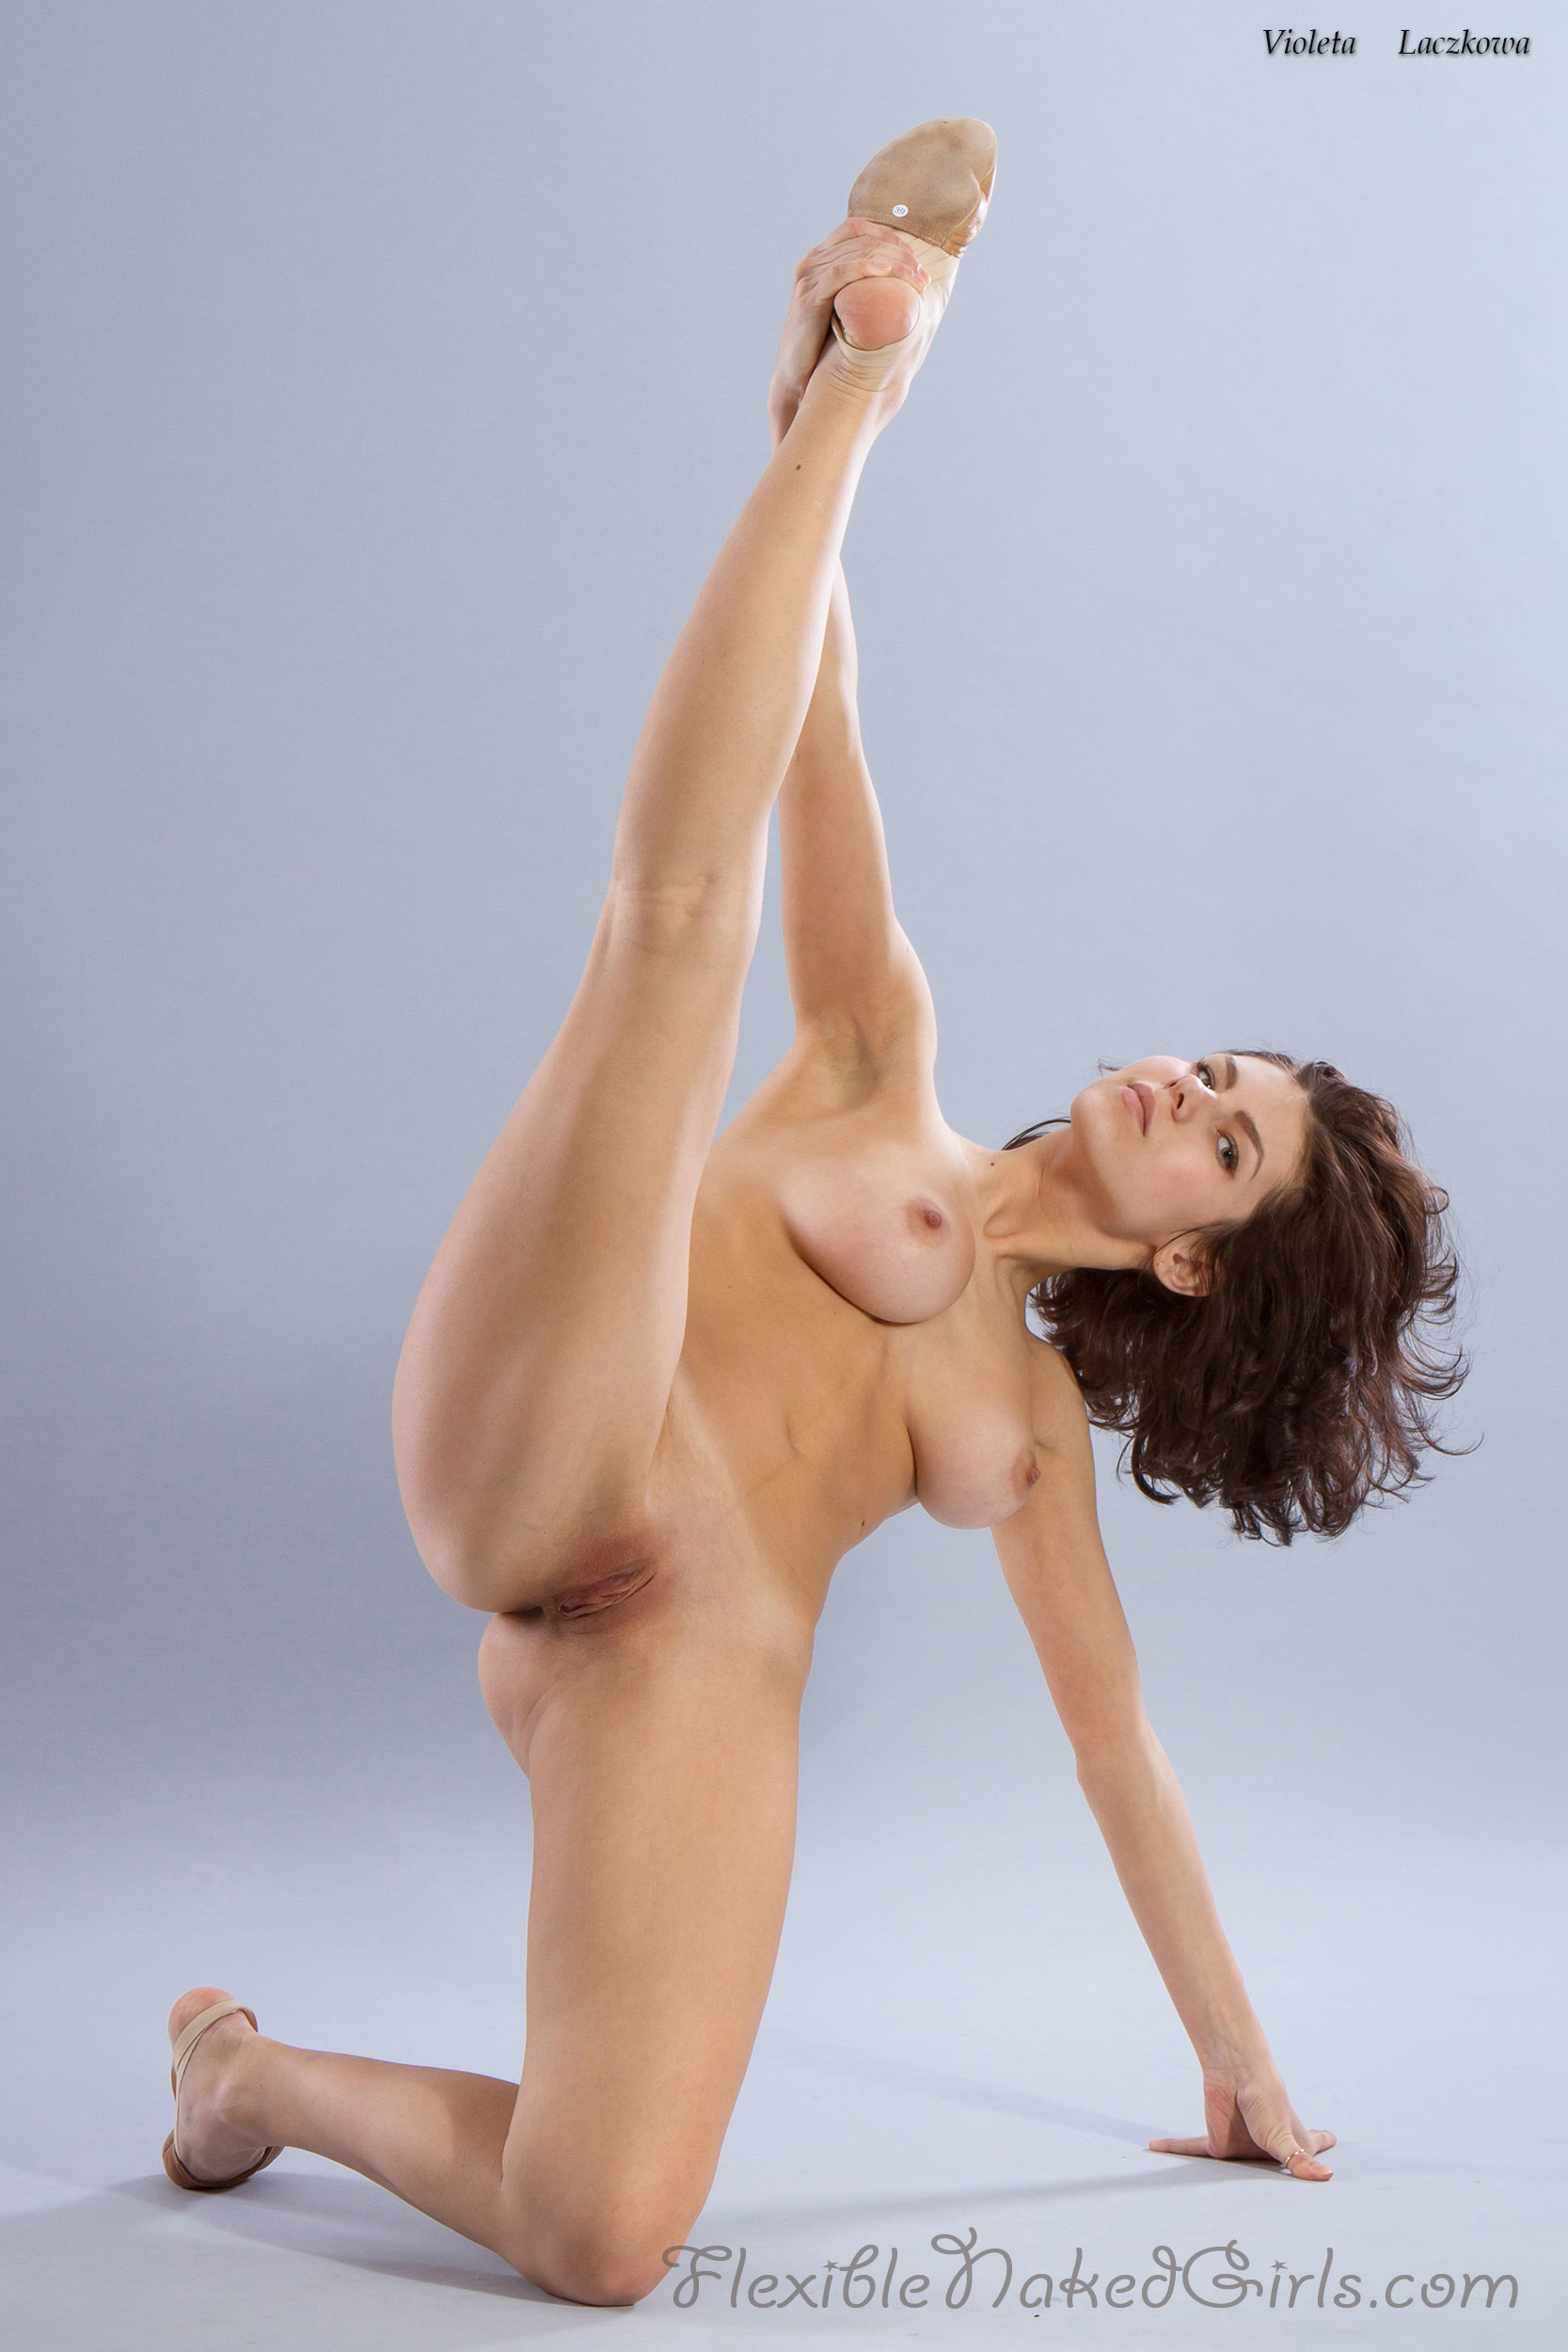 extremely flexible nude girl